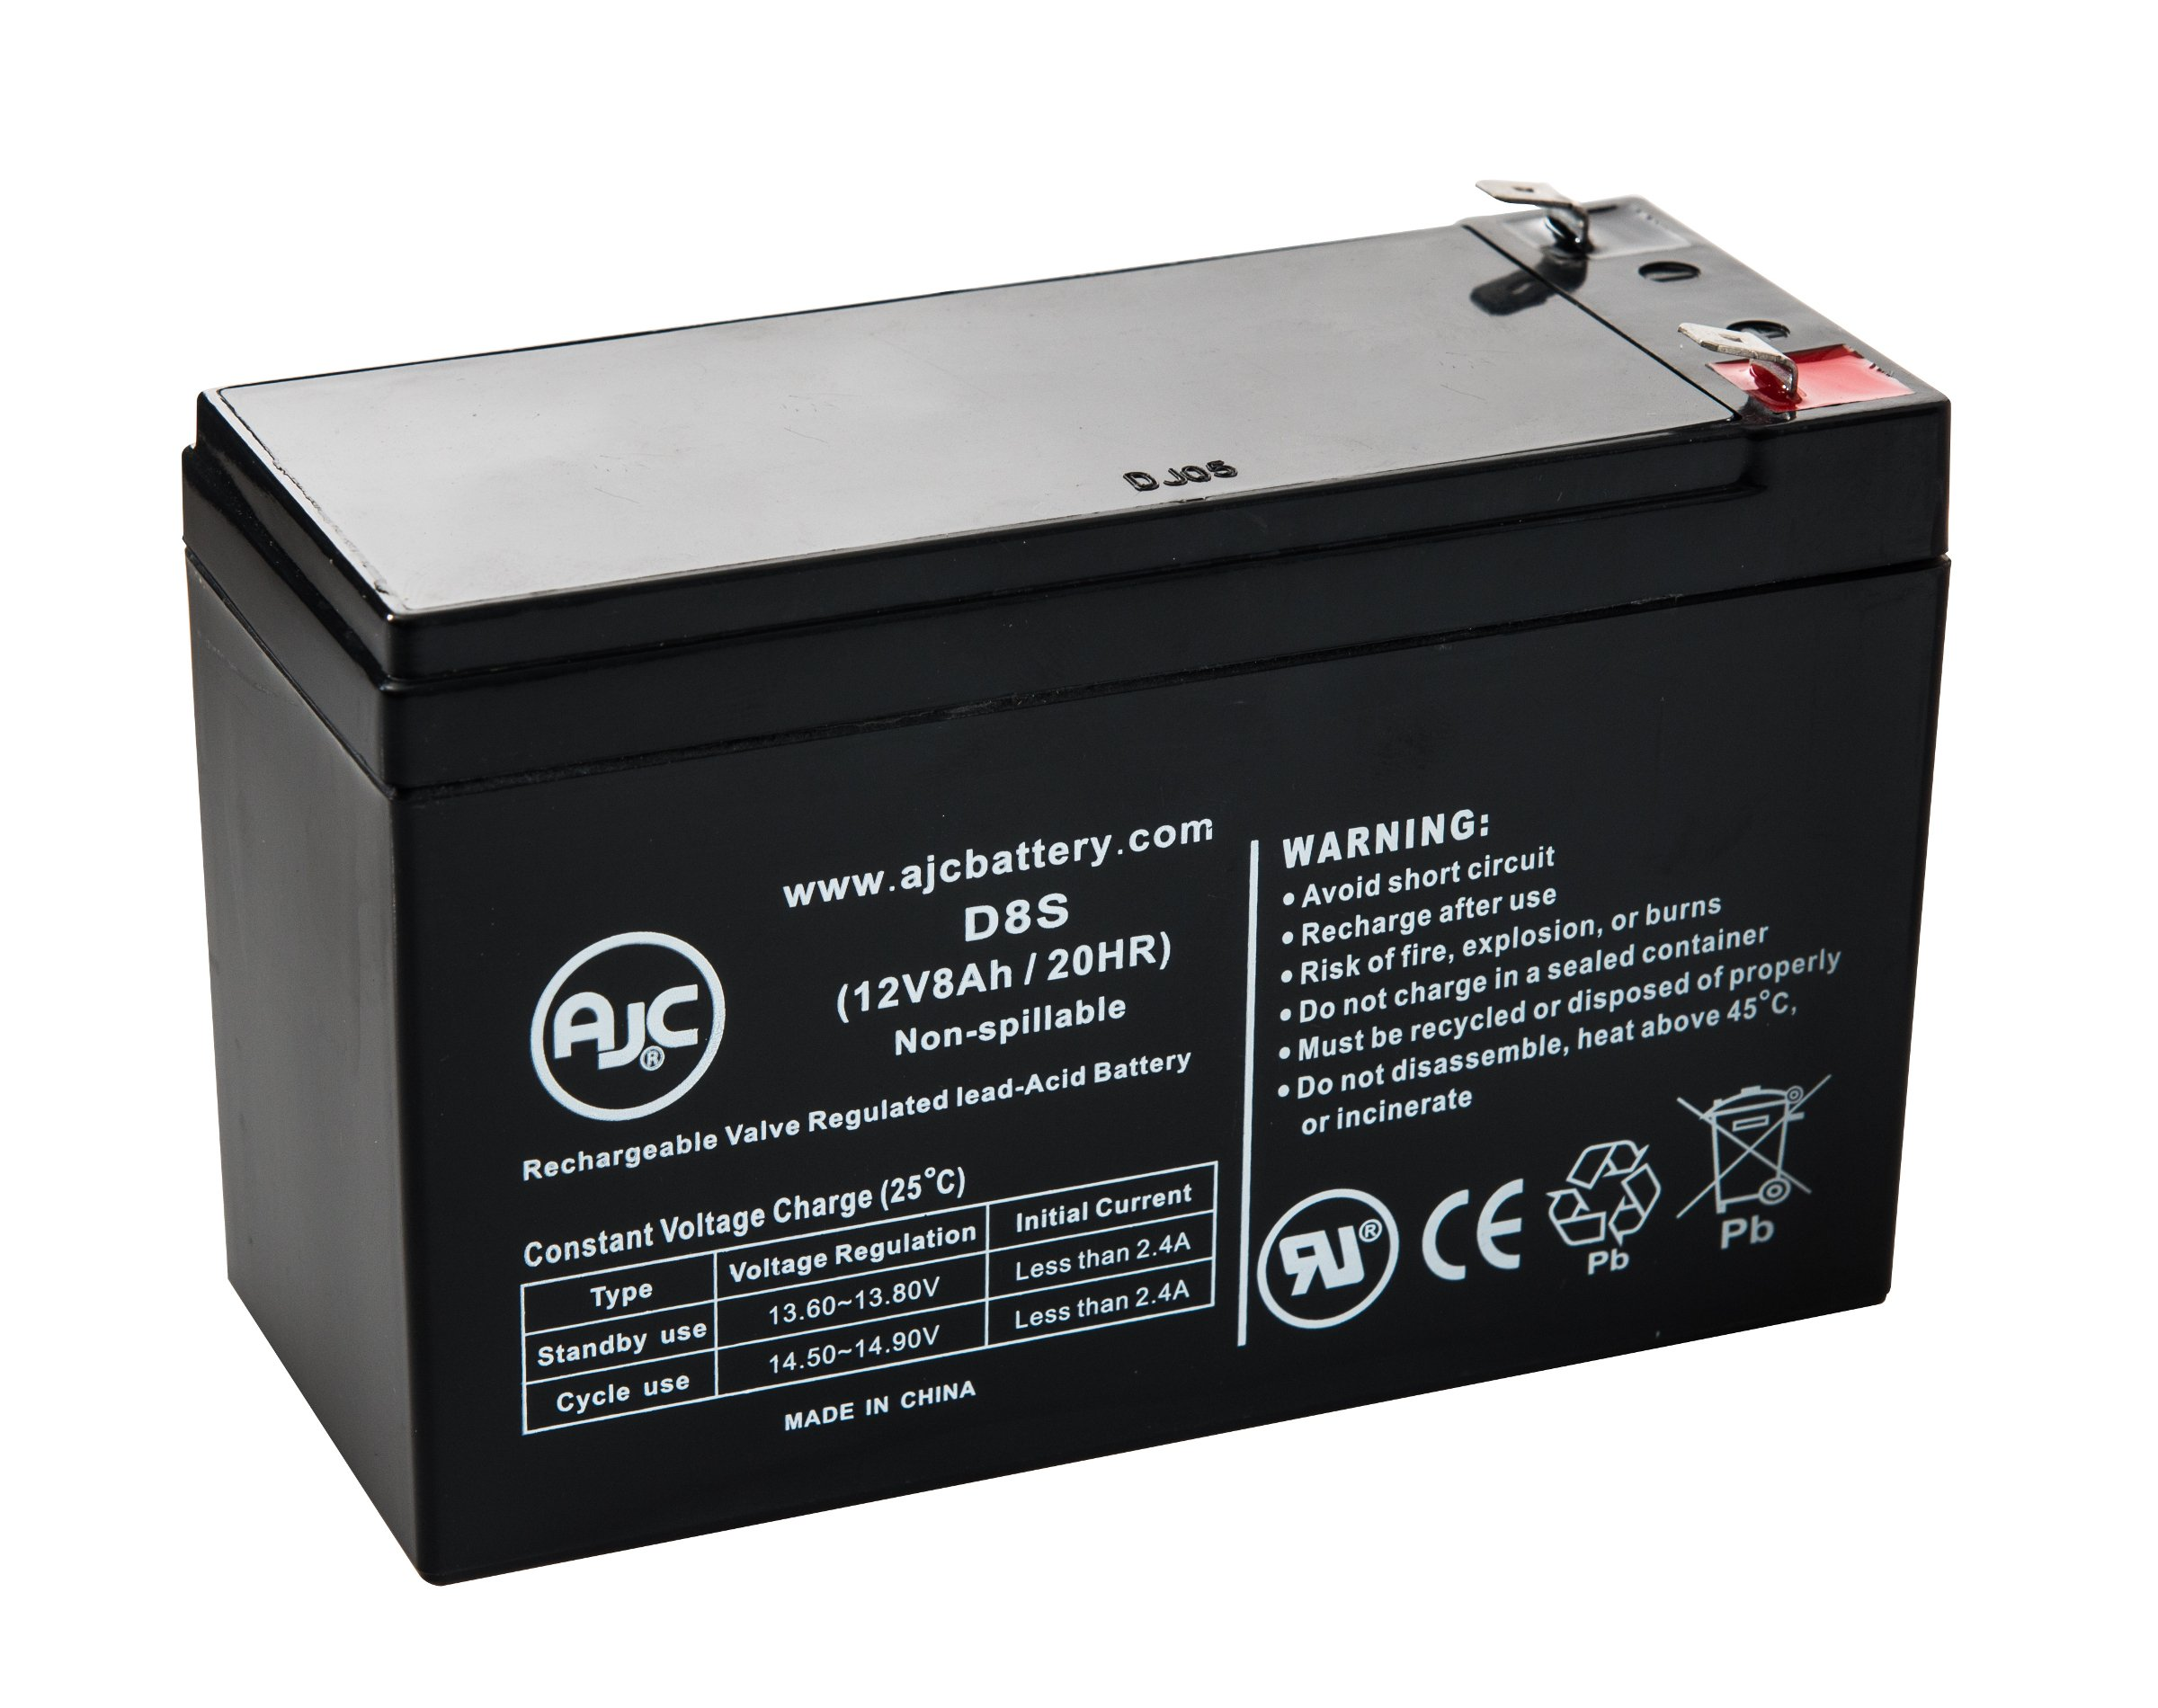 This is an AJC Brand Replacement DLA1500 Dell Smart-UPS 1500VA USB 12V 18Ah UPS Battery